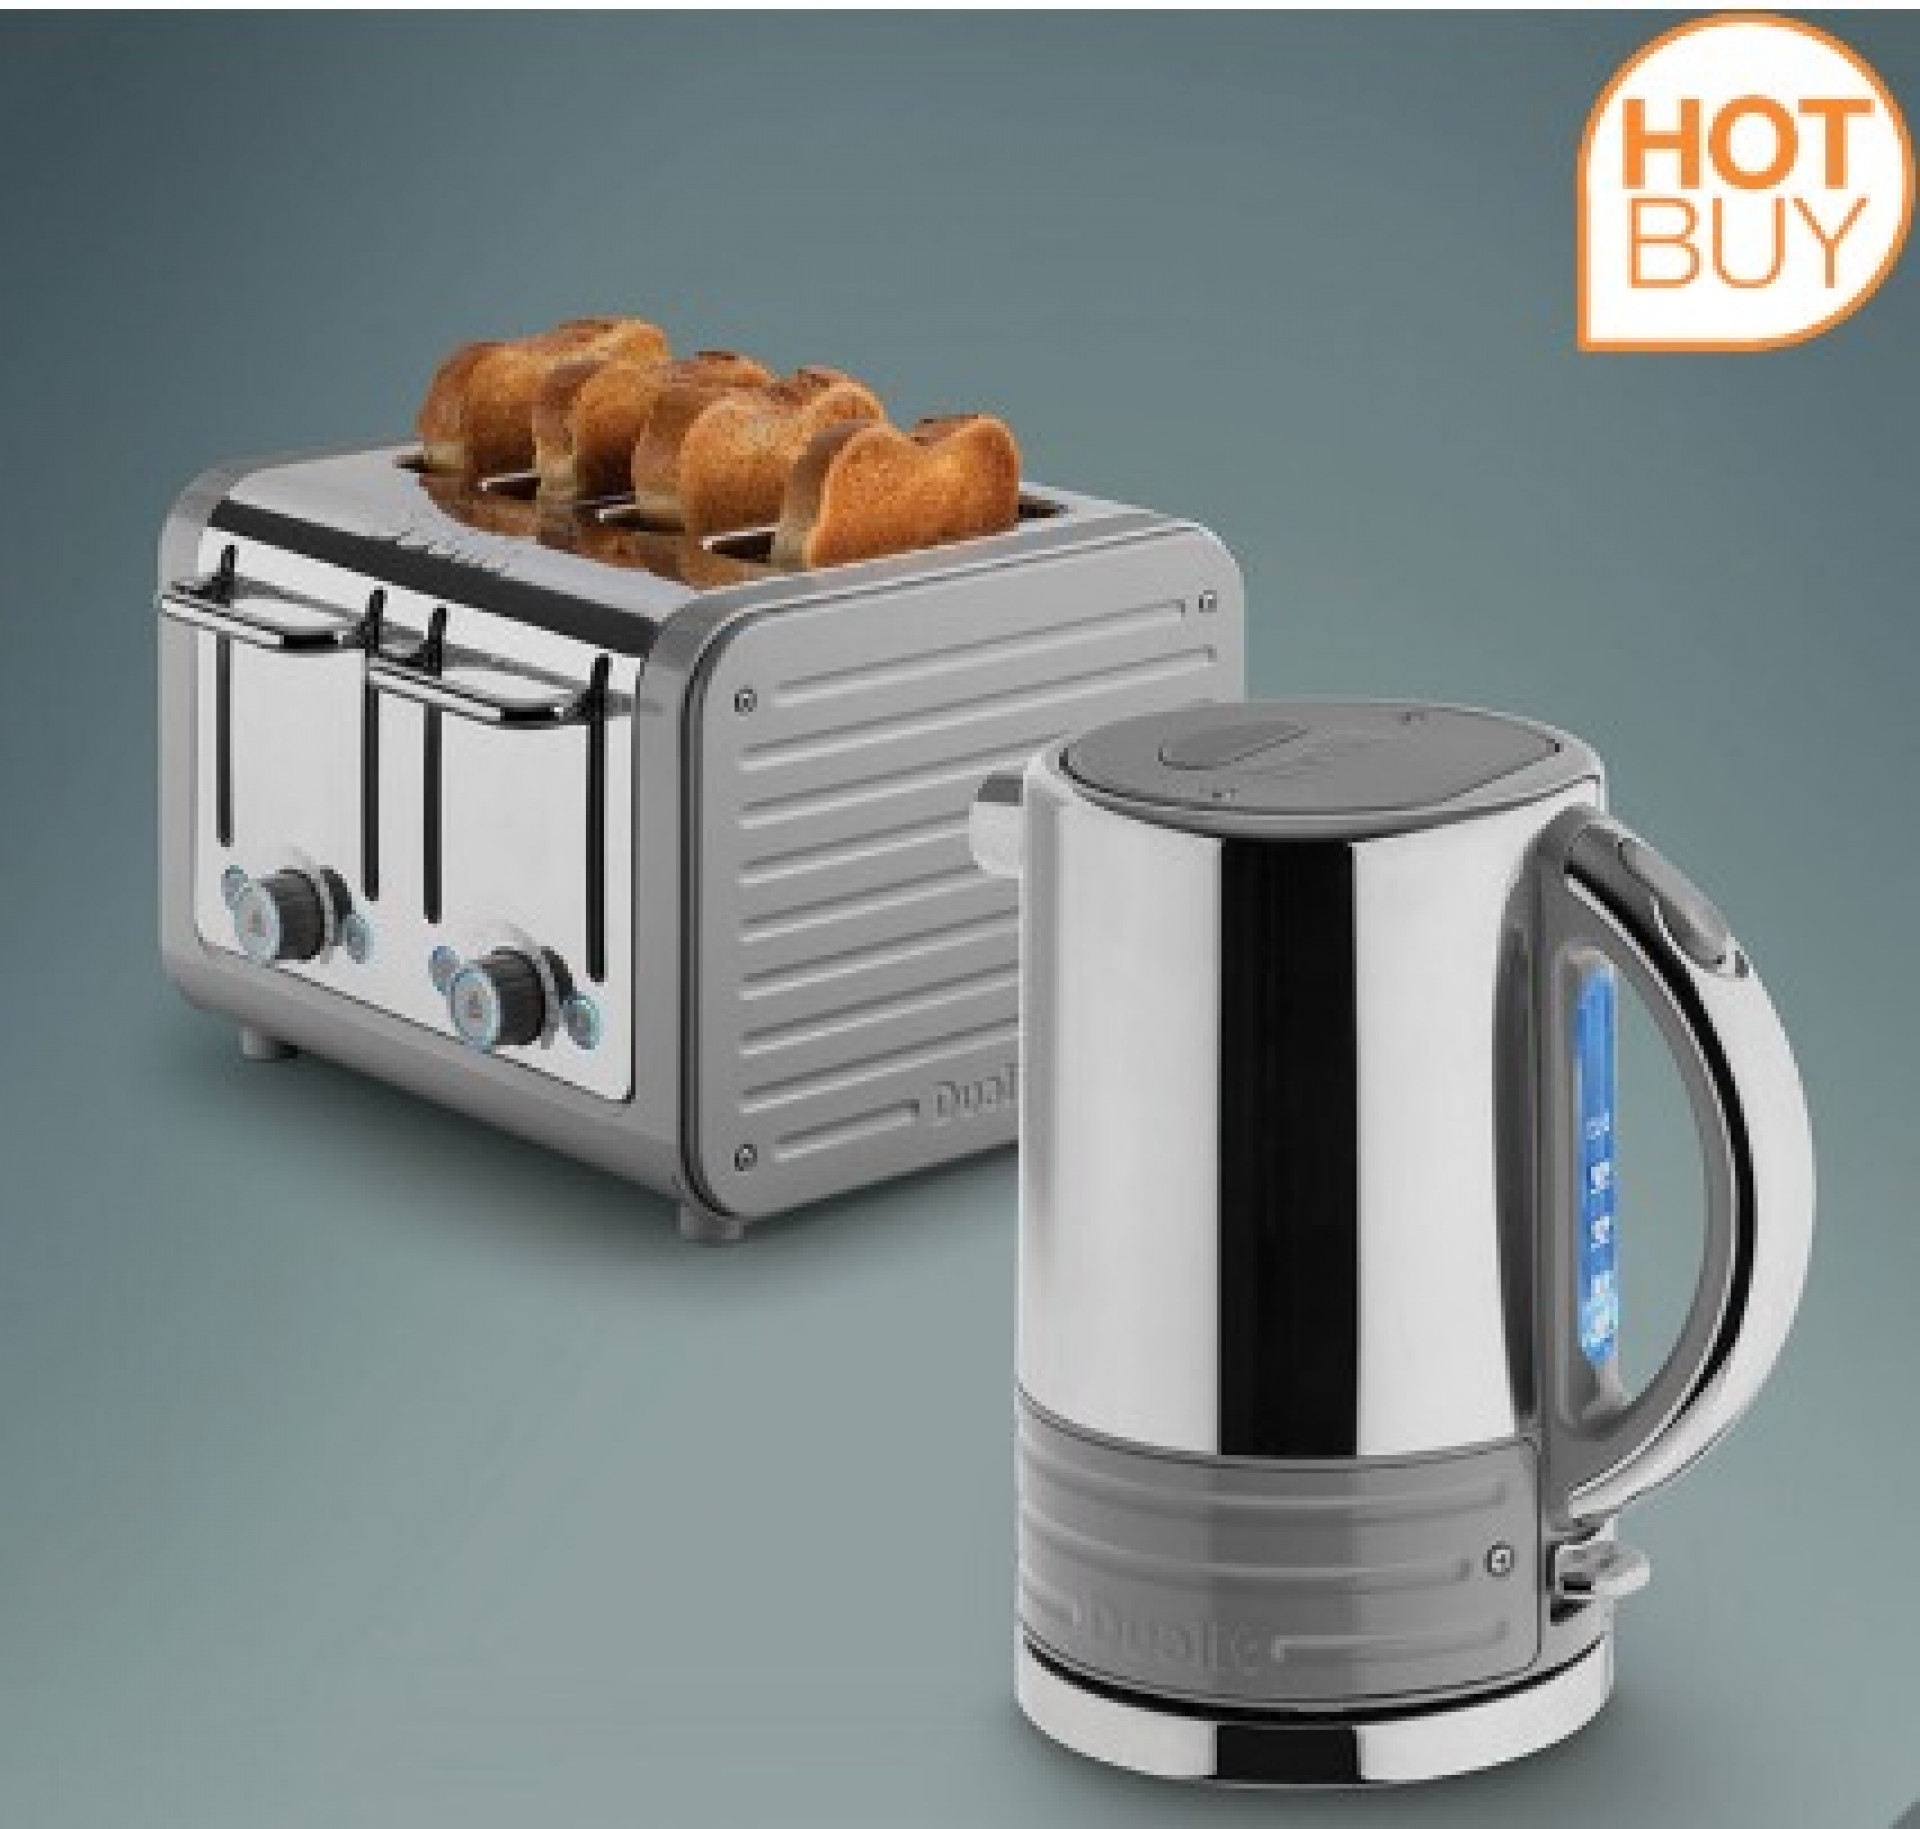 Dualit Architect Kettle and Toaster Set in Dark Grey